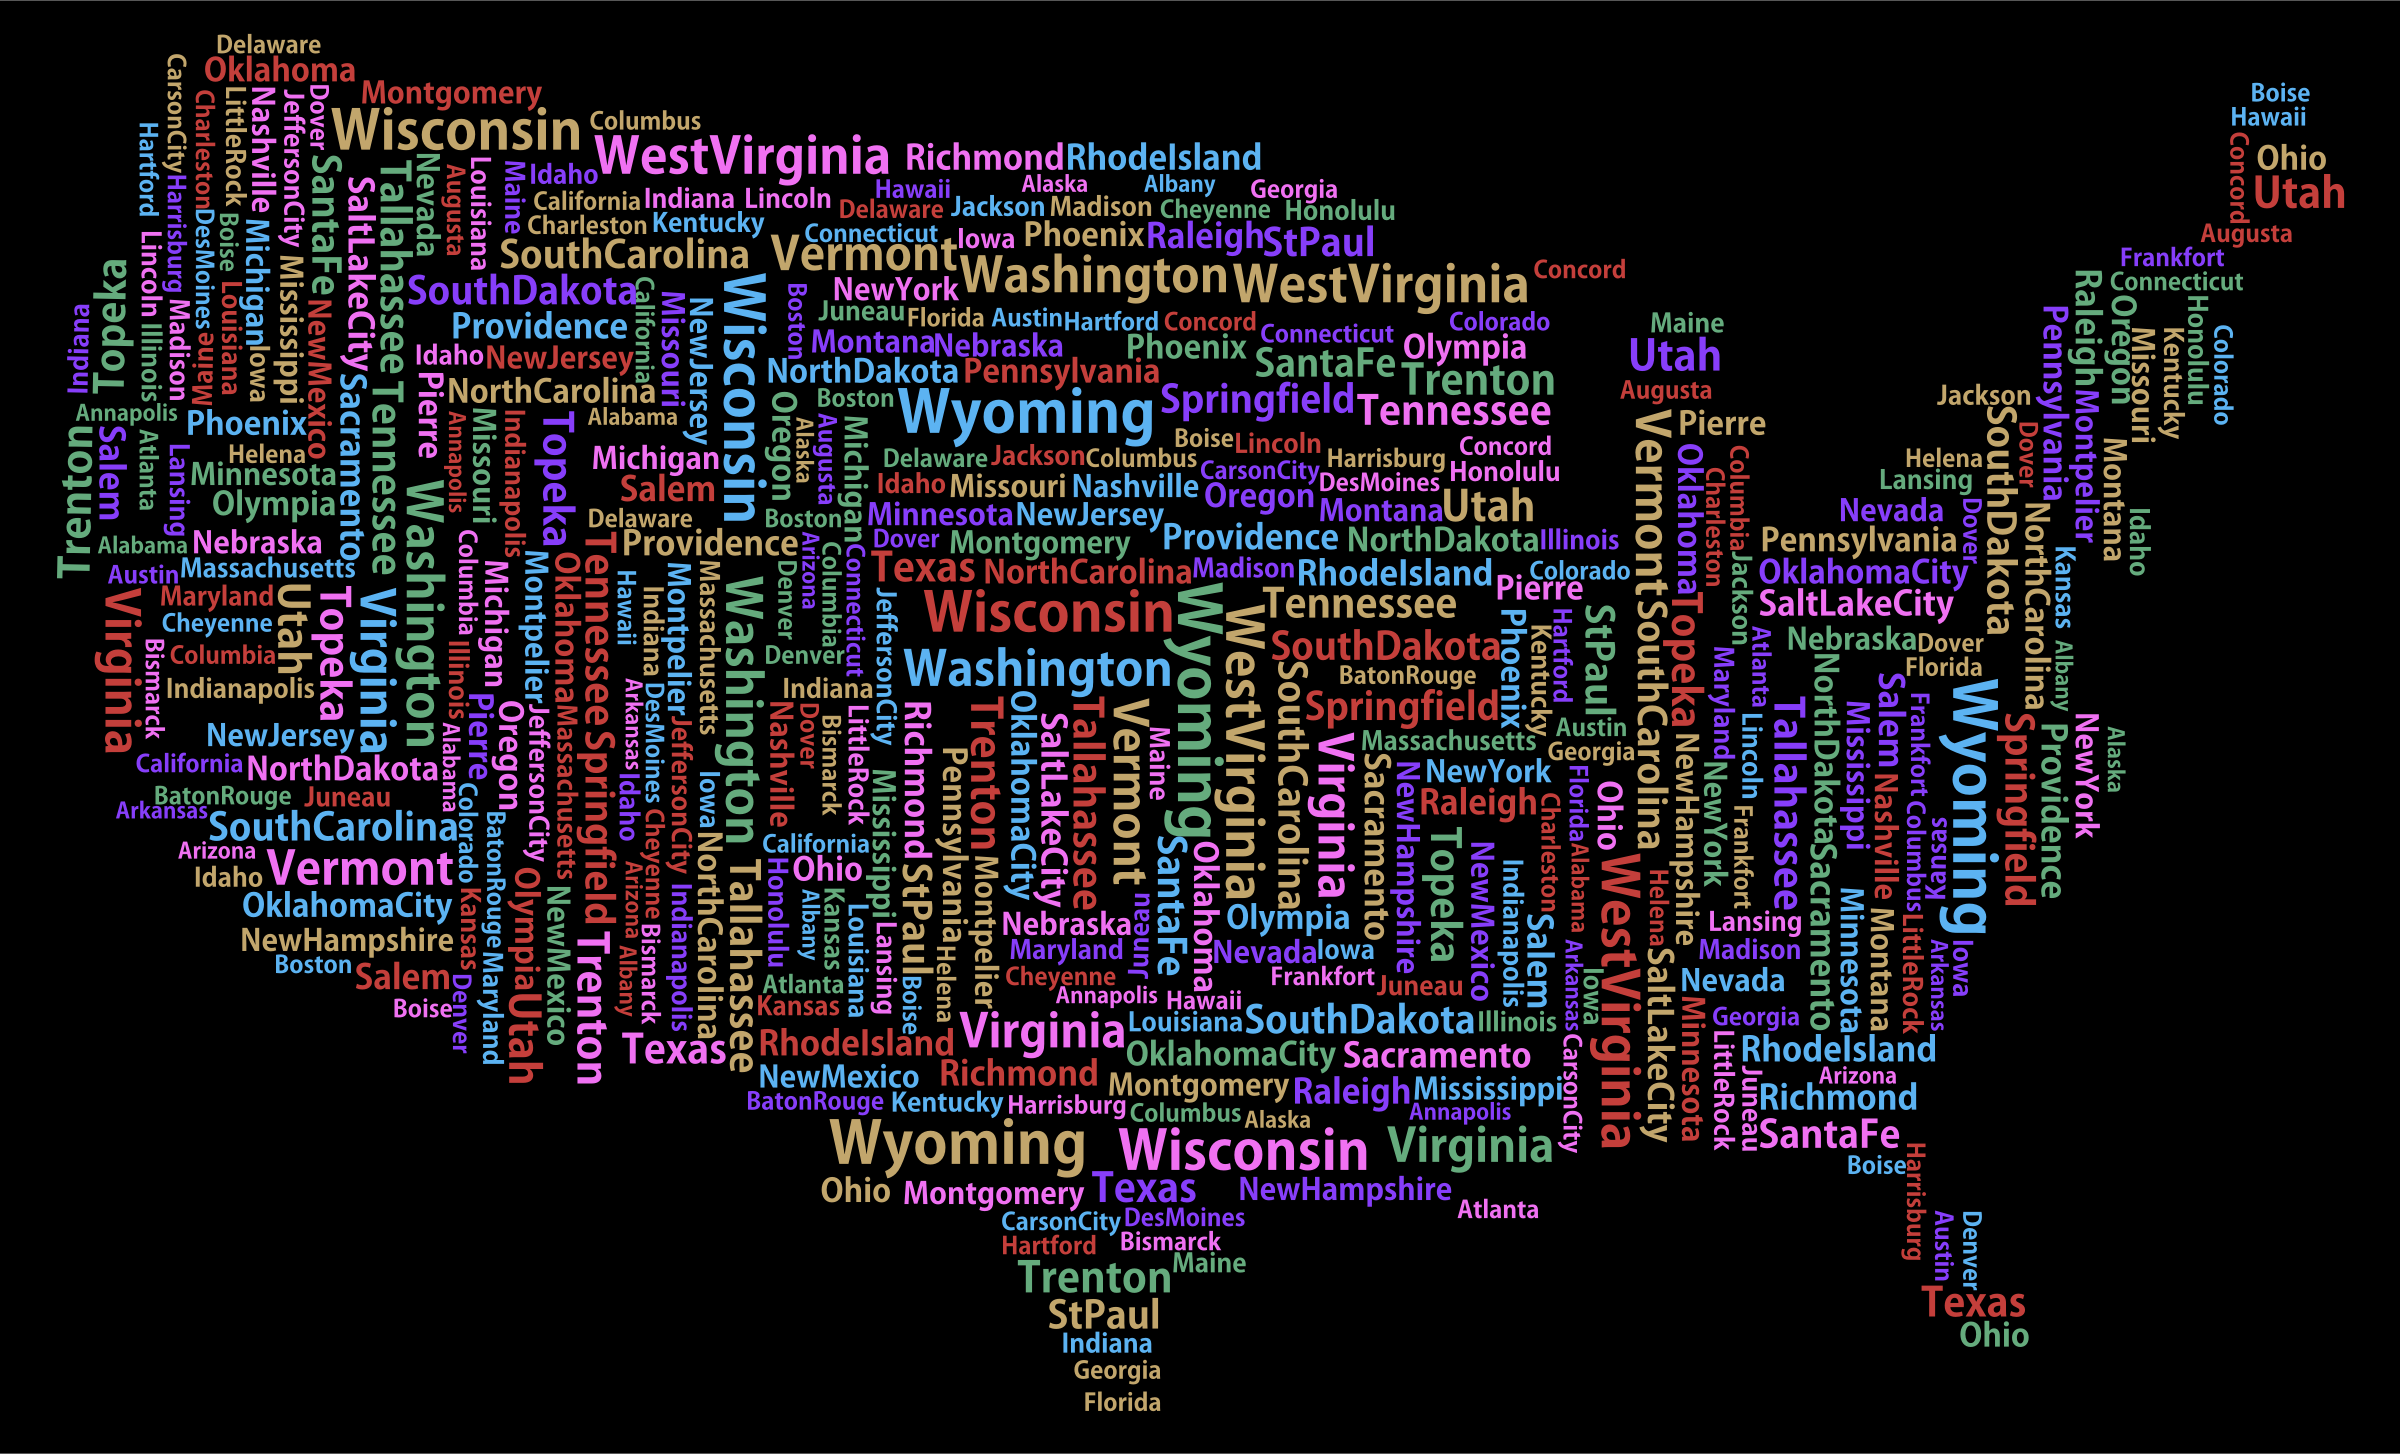 America States And Capitals Word Cloud Variation 2 by GDJ